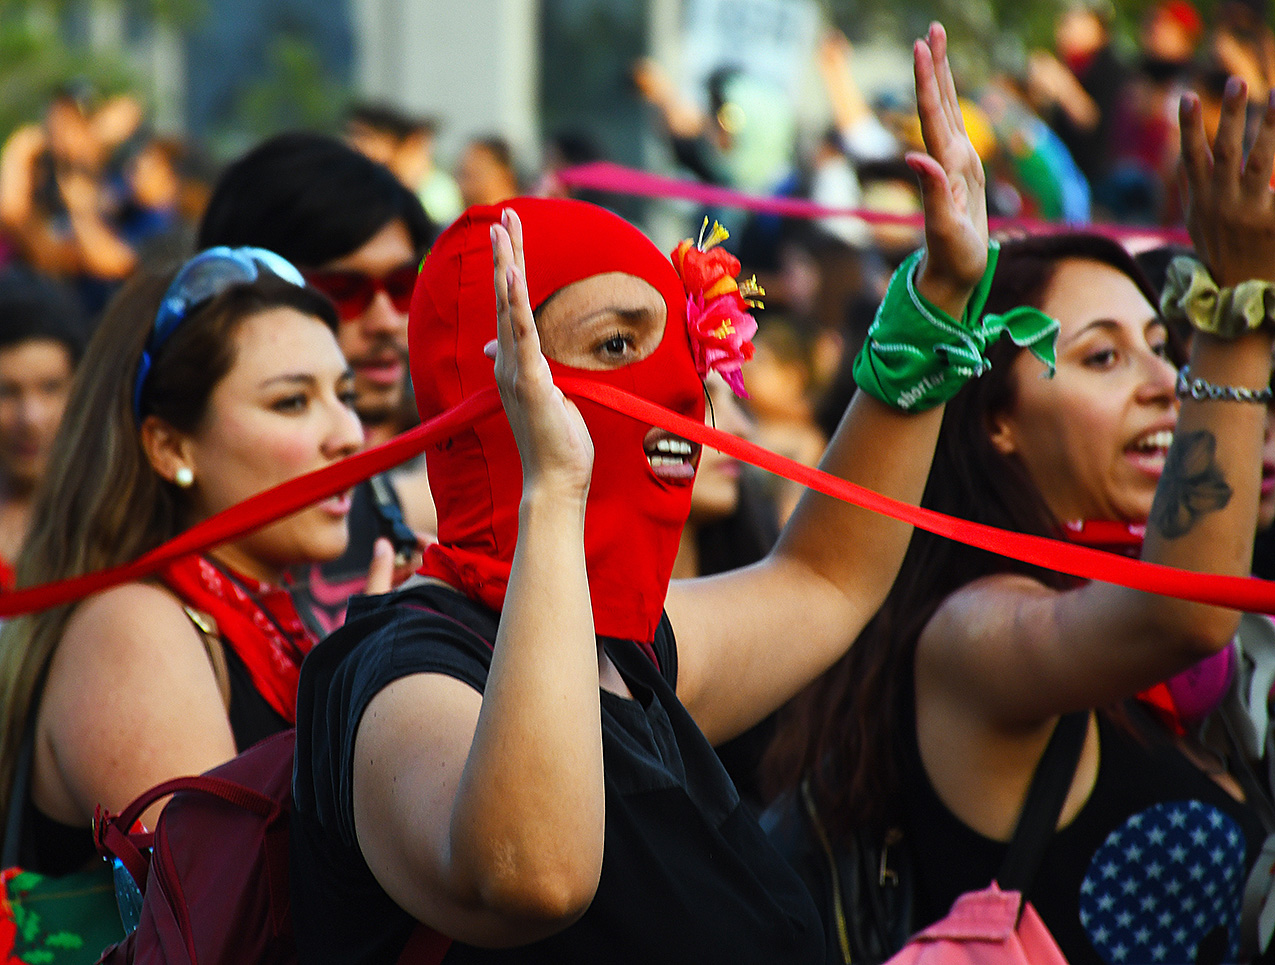 Female protesters, including one wearing a red mask, hold their hands in the air